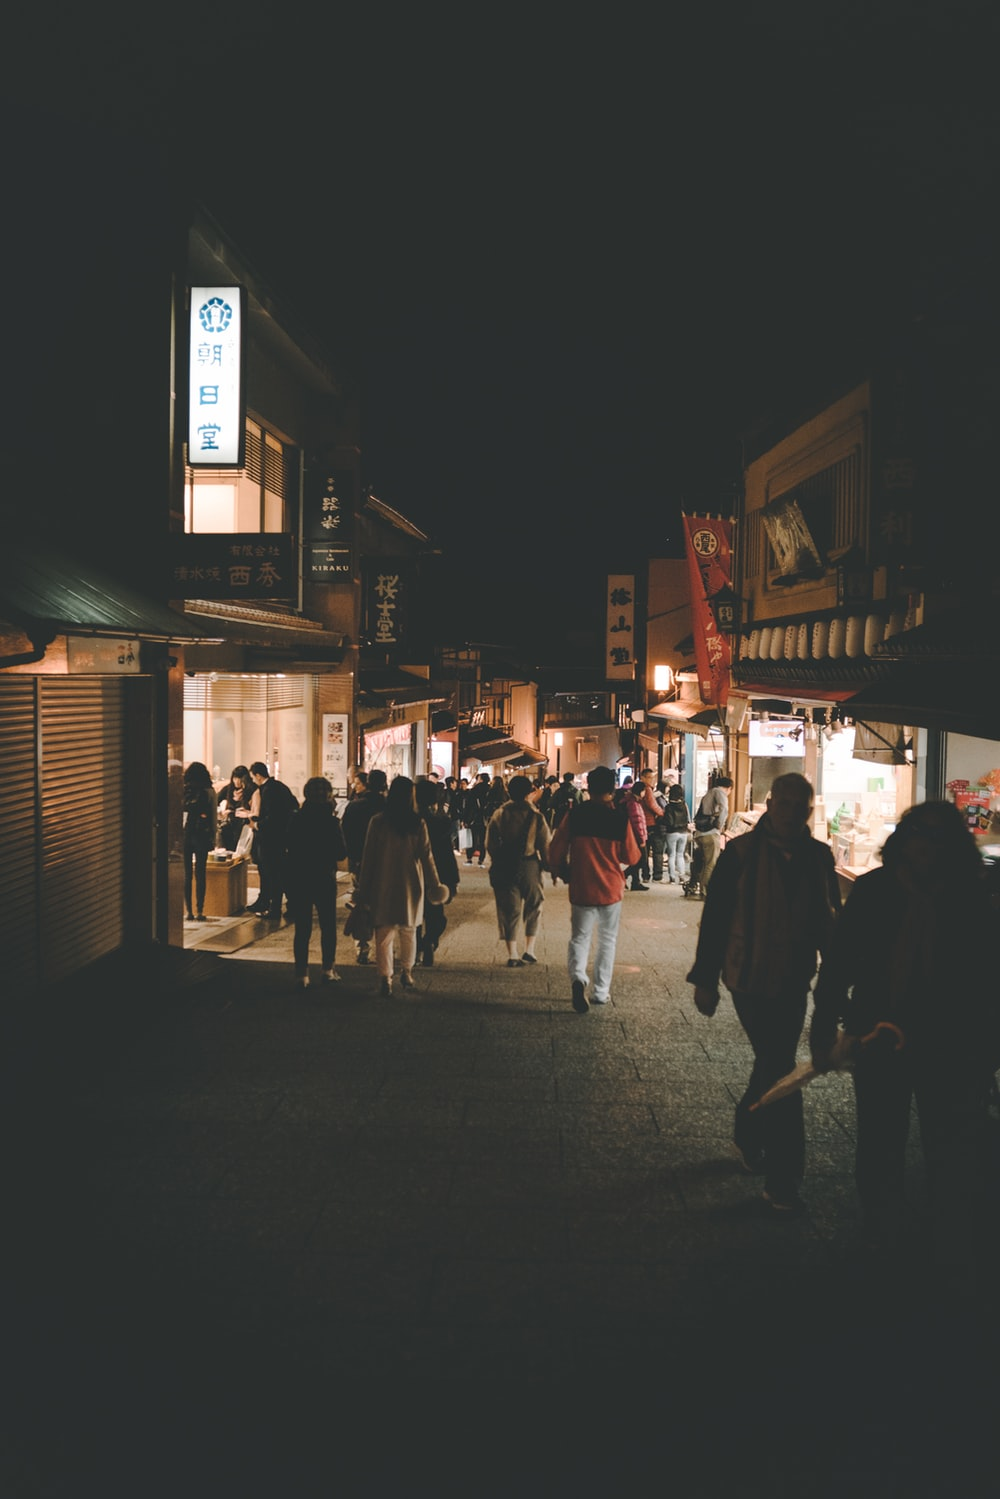 people walking on streets during nighttime